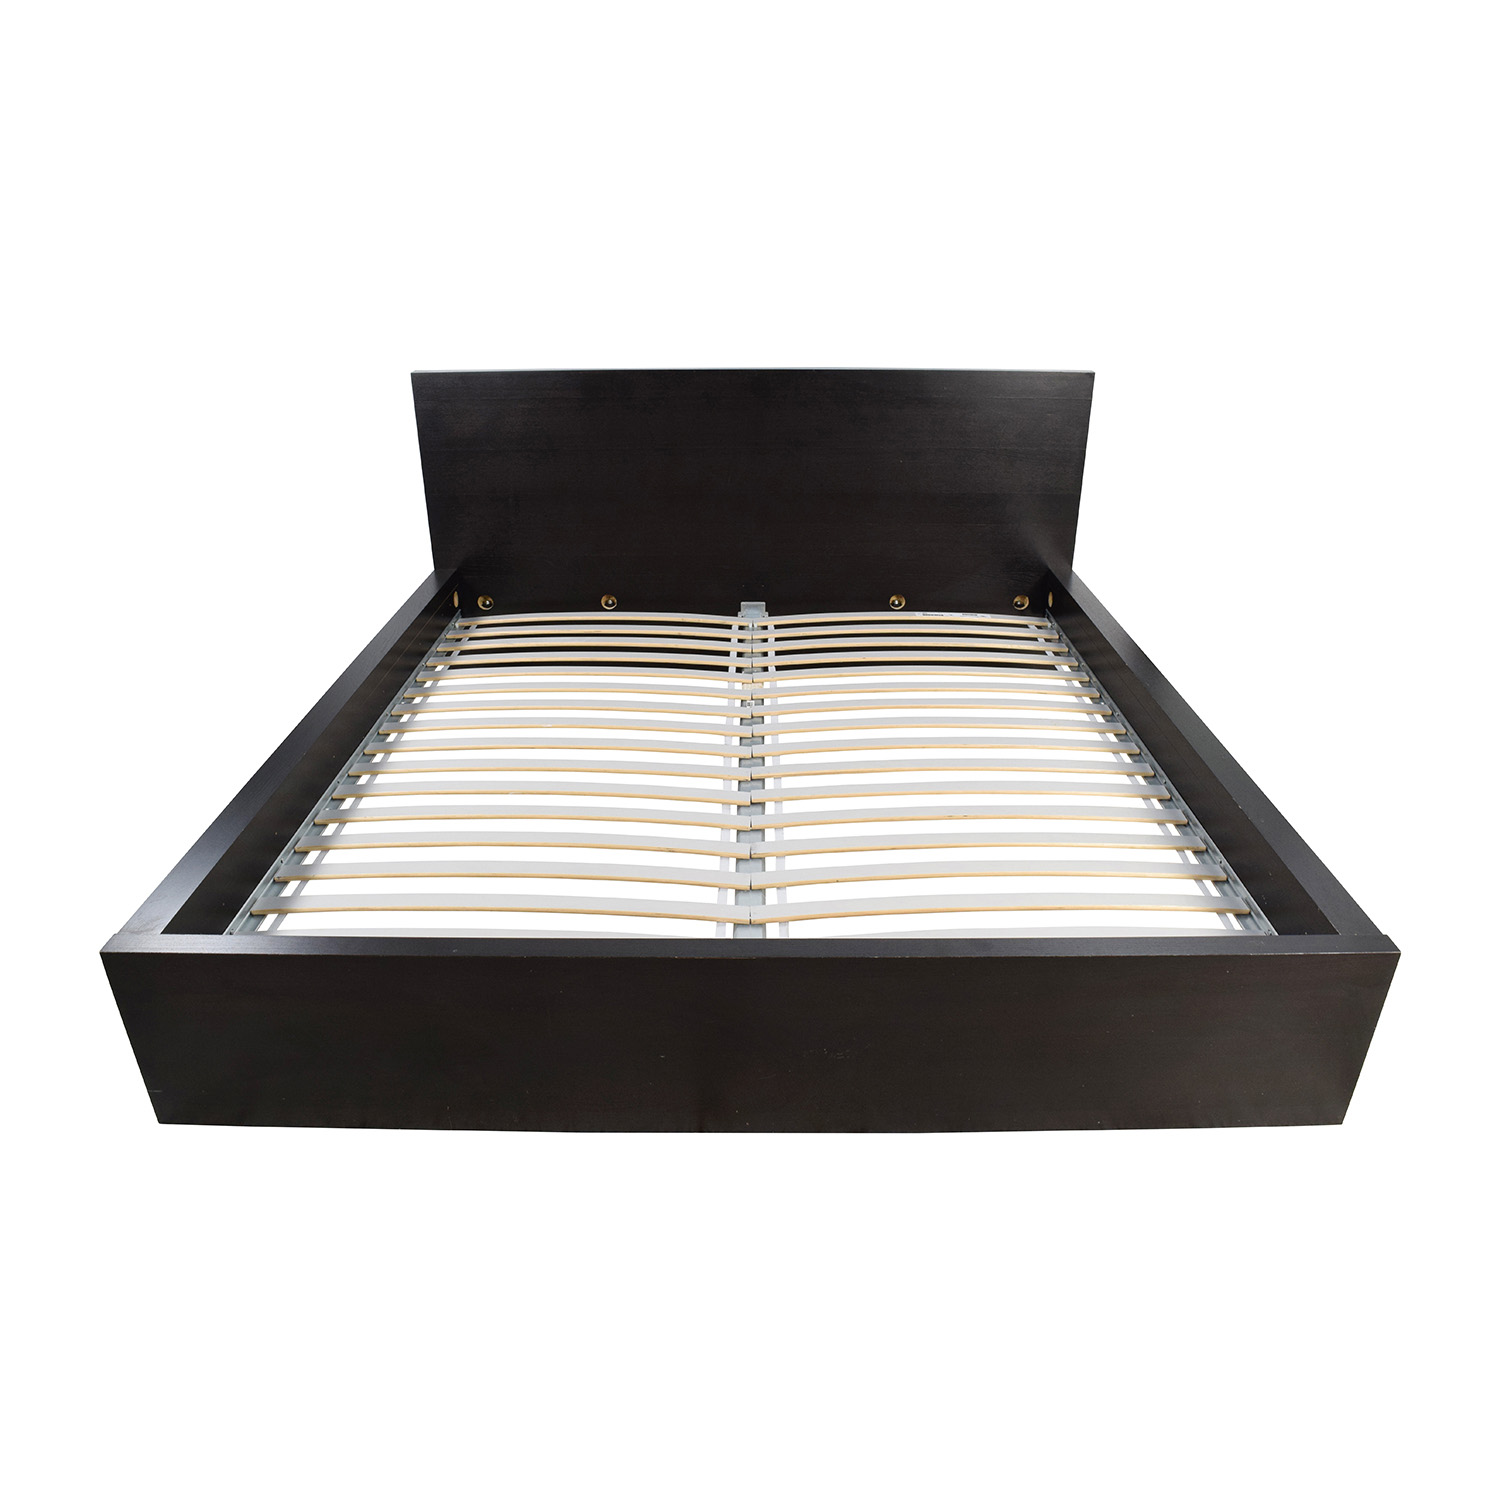 79 Off Ikea Ikea Malm King Bed Frame Beds,Best Time To Rent A House